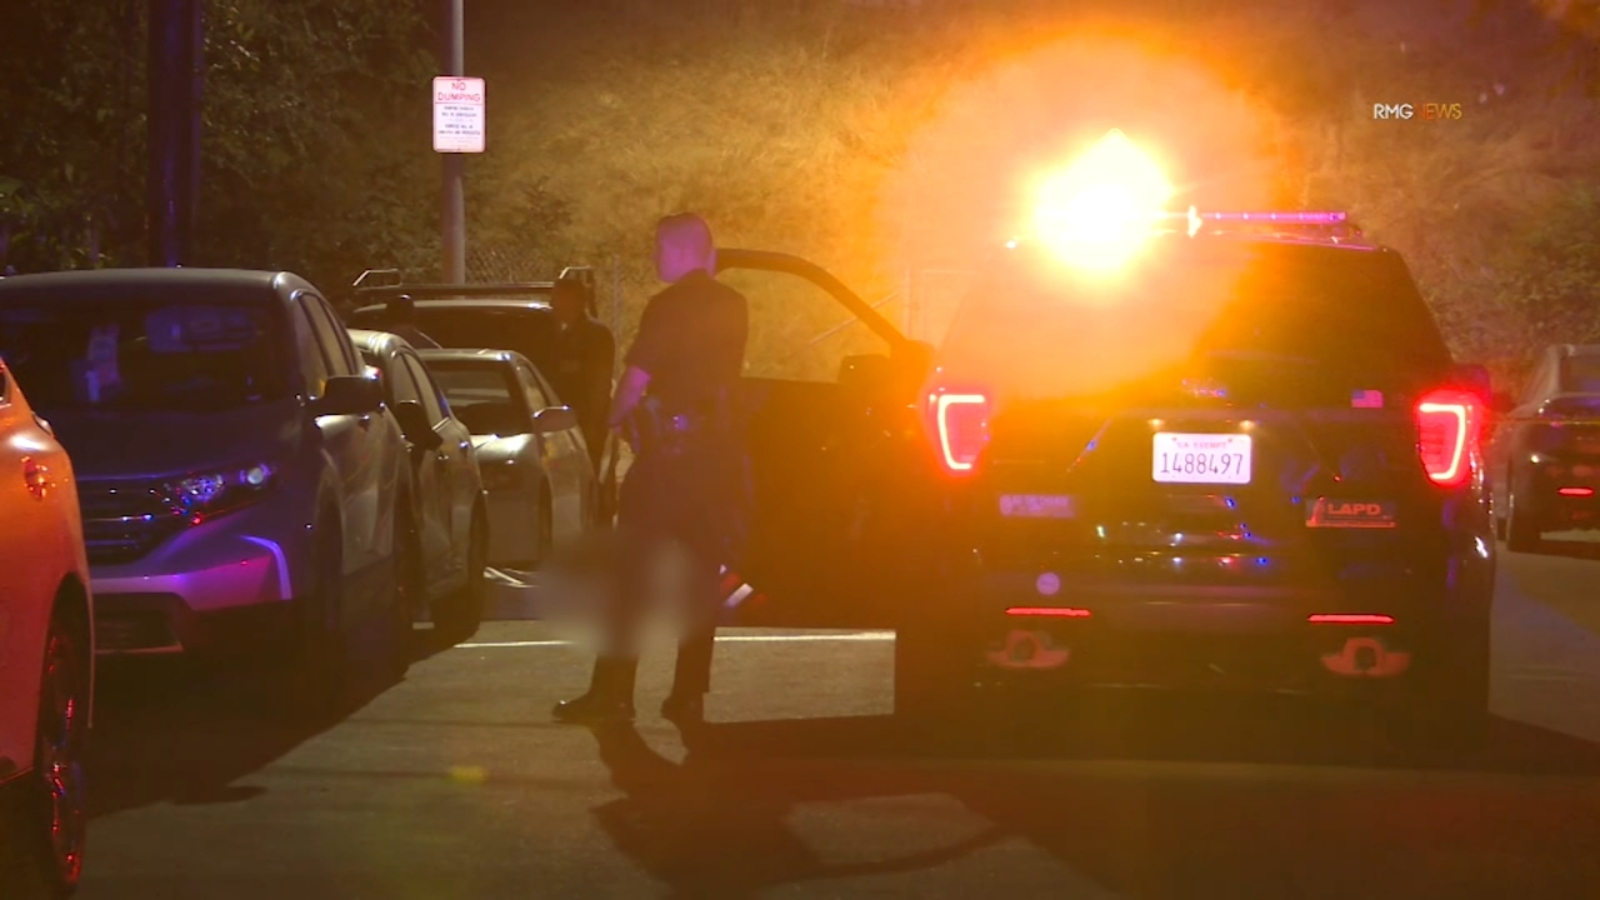 1 killed in North Hills shooting, police say